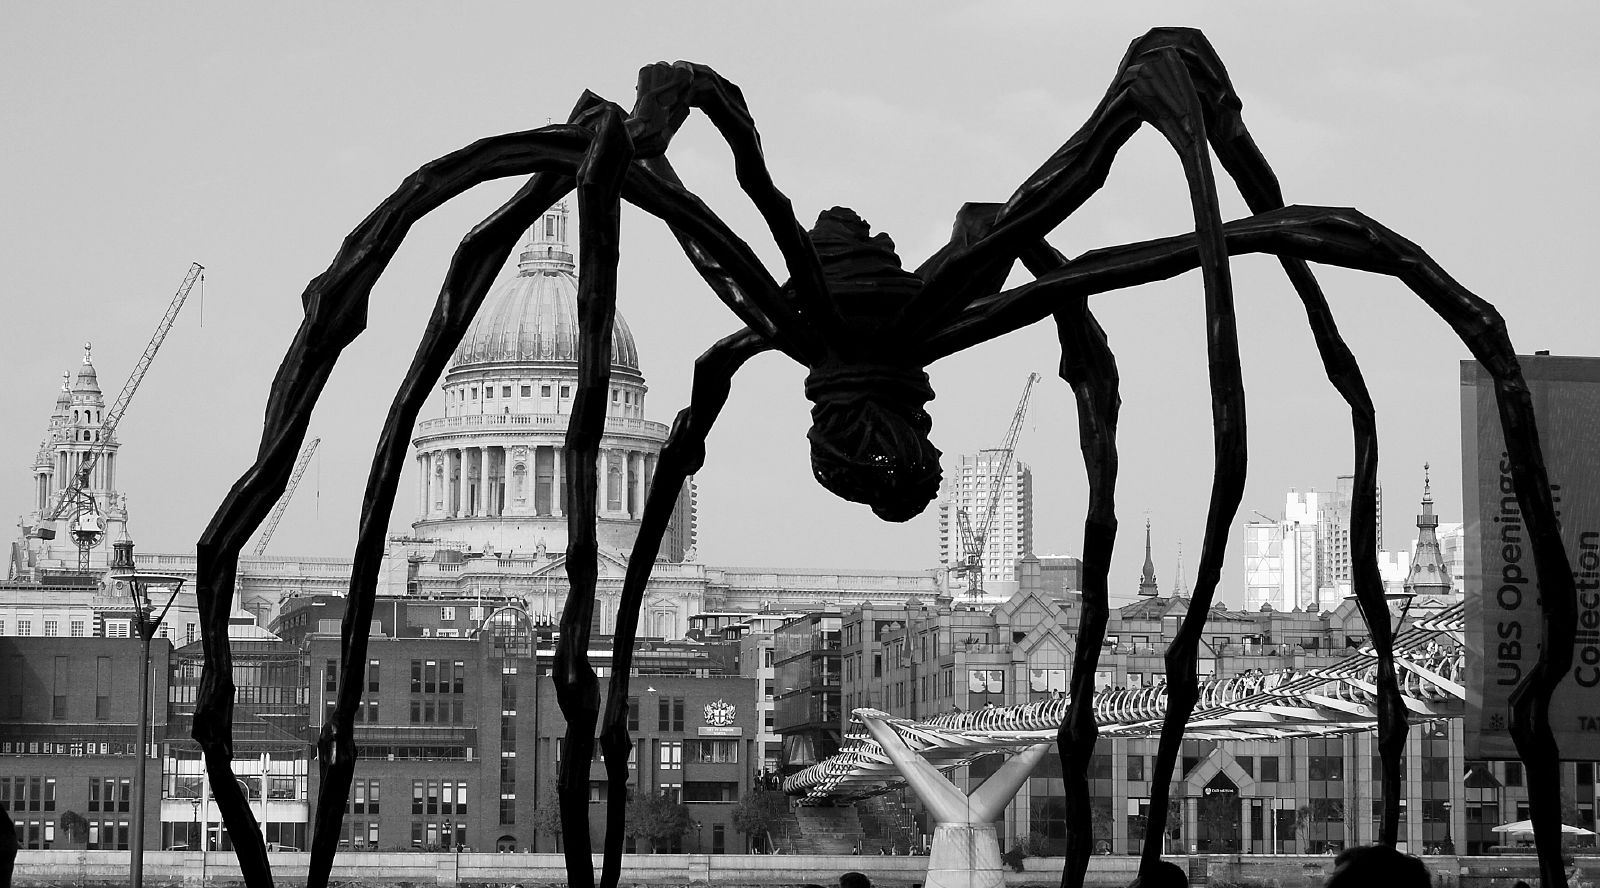 Maman louise bourgeois 39 giant spider flickr photo sharing - Bourgeois foto ...